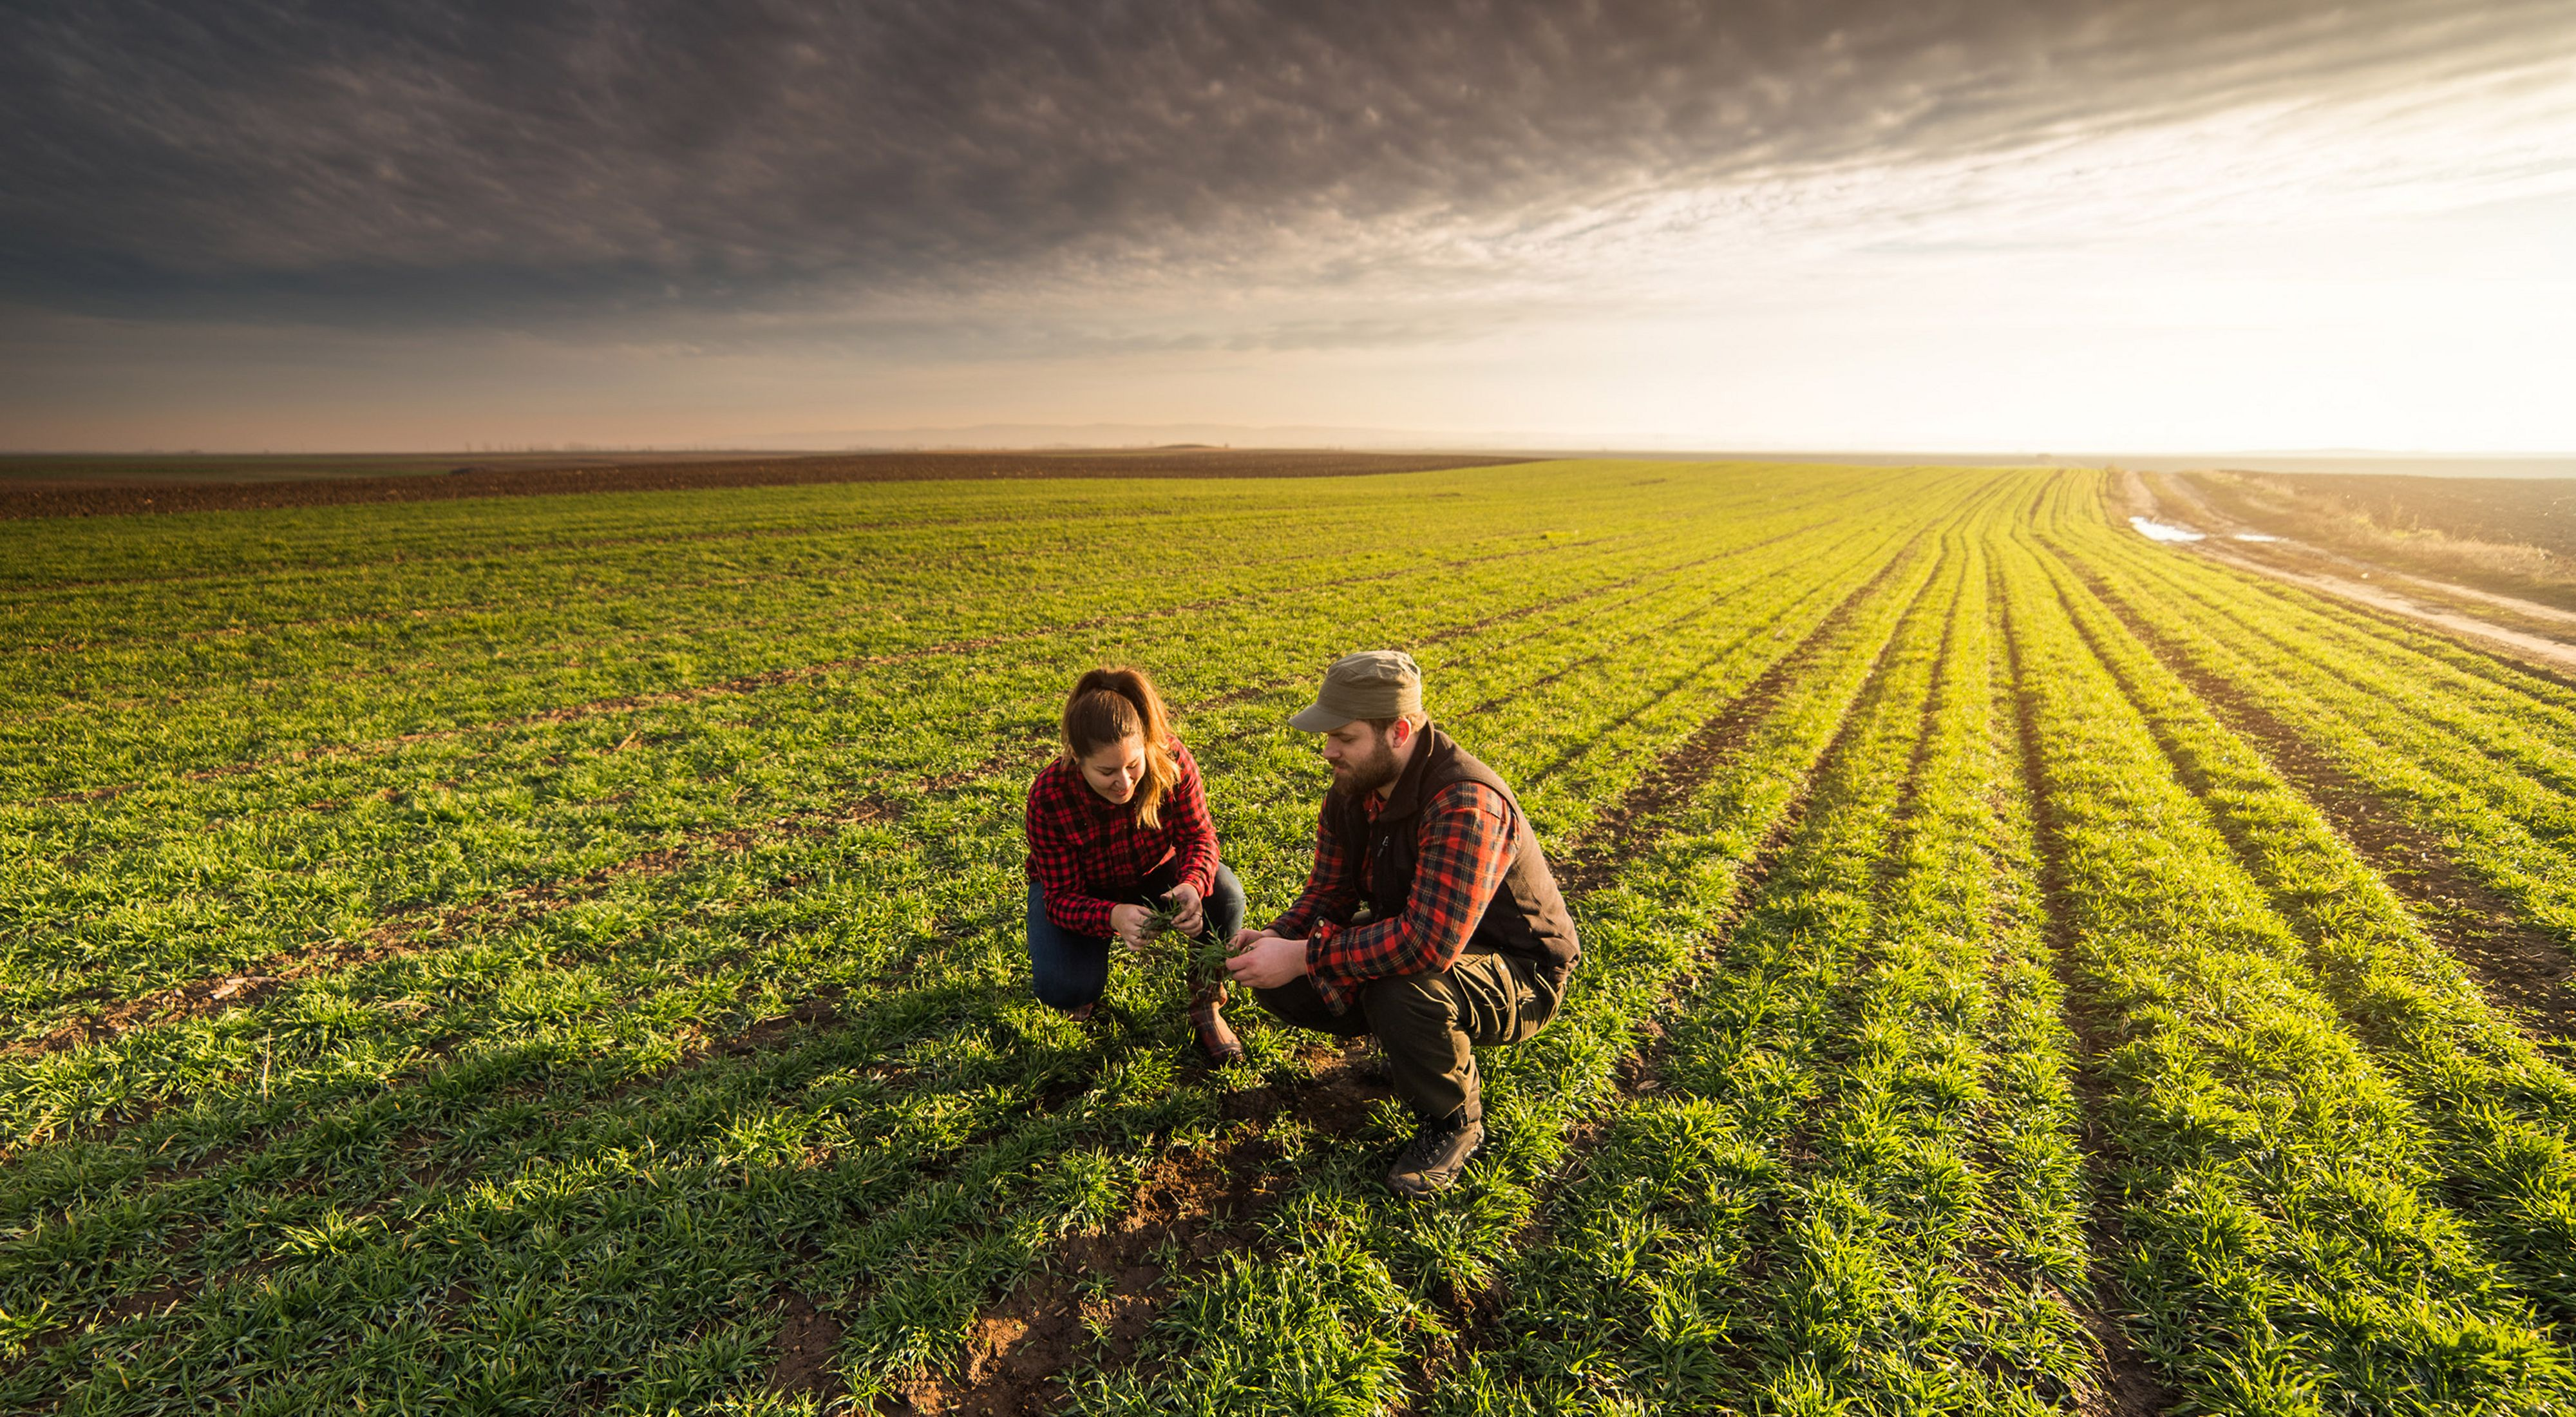 A man and a woman crouch in an agricultural field at sunrise, looking at the soil.